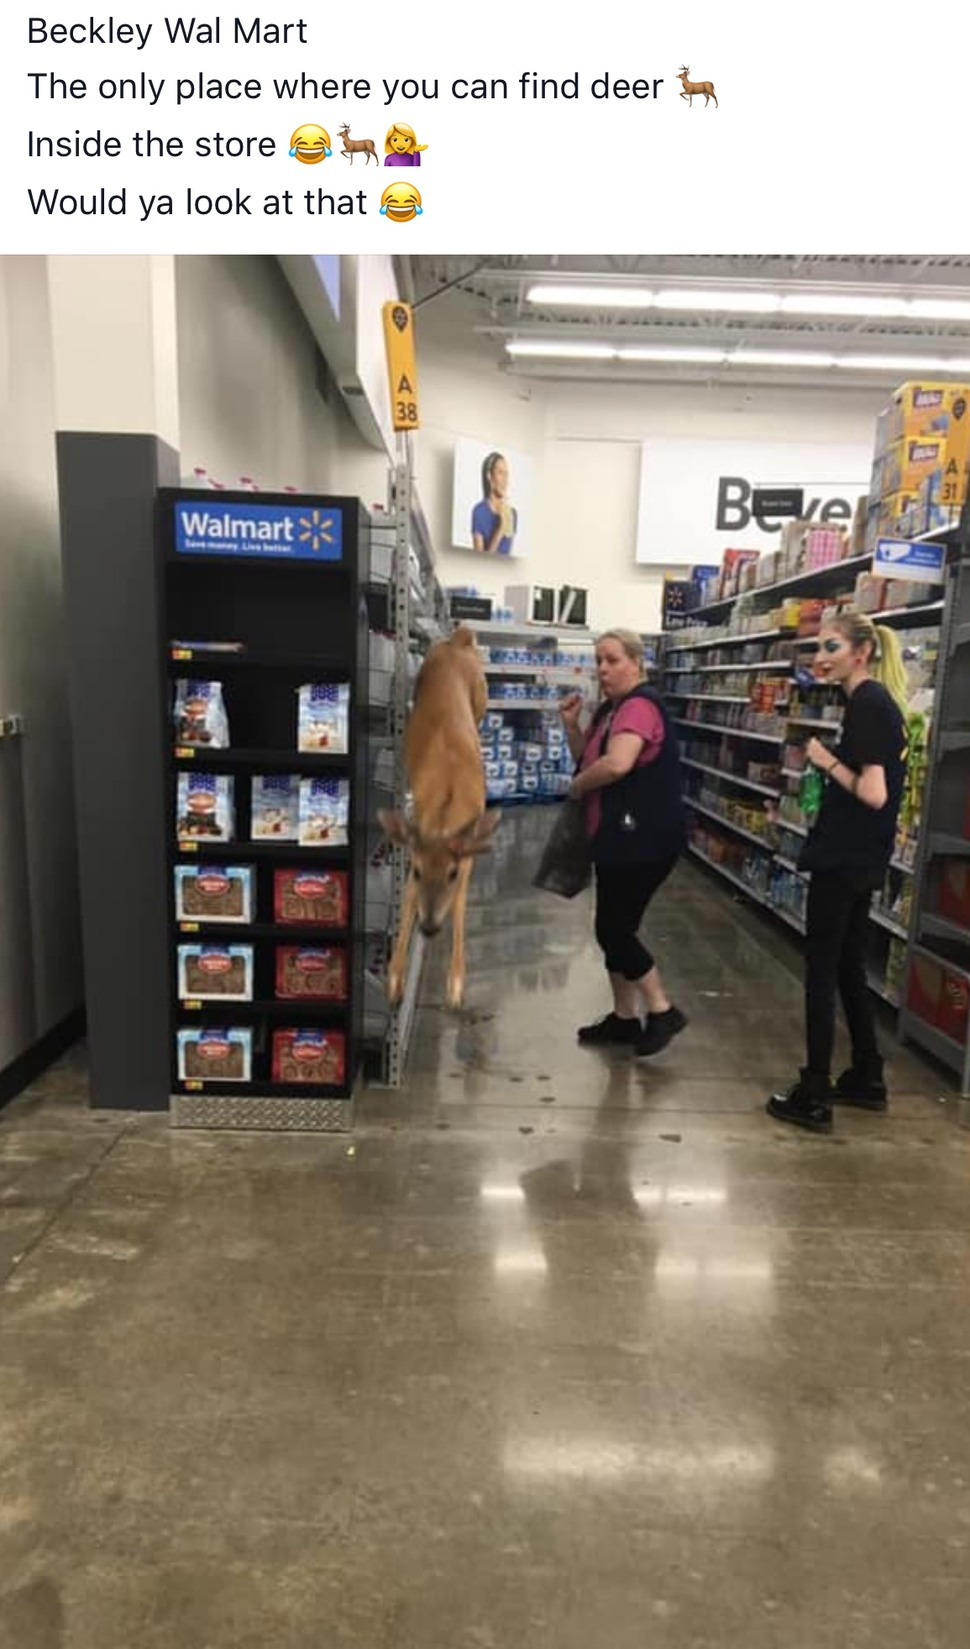 deer in my hometown Walmart - meme